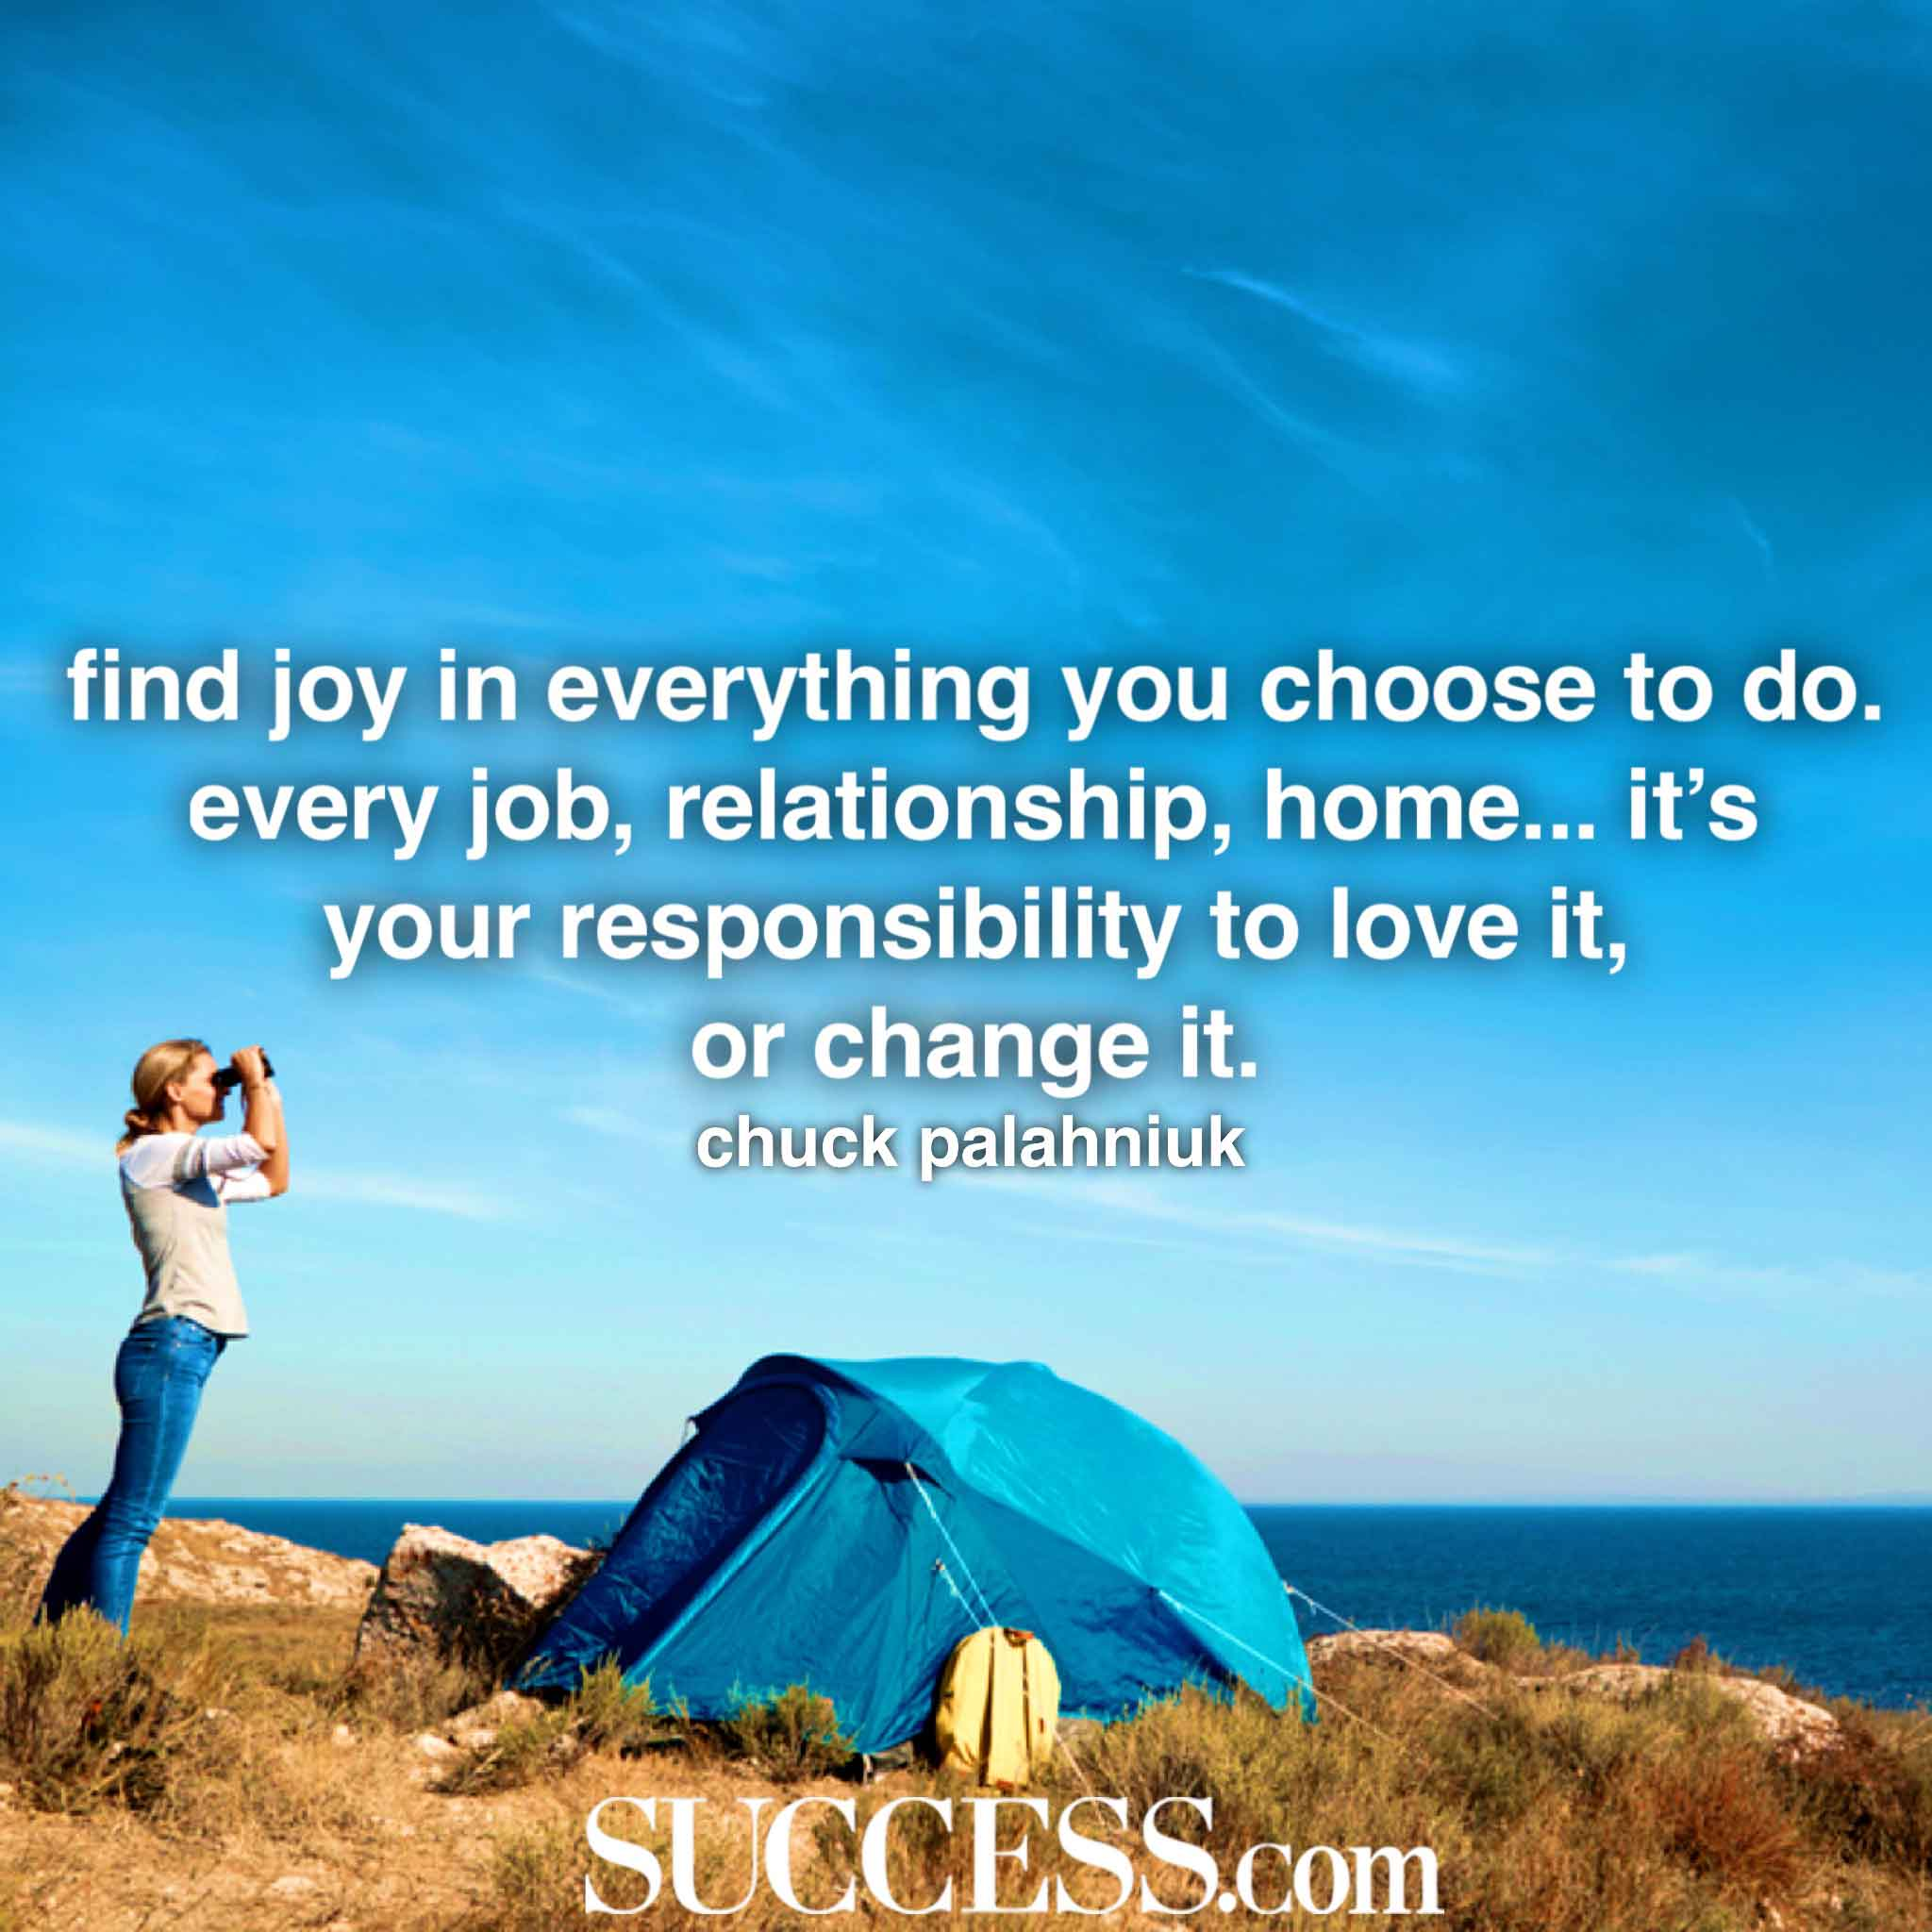 3 Inspiring Quotes to Help You Find Joy  SUCCESS